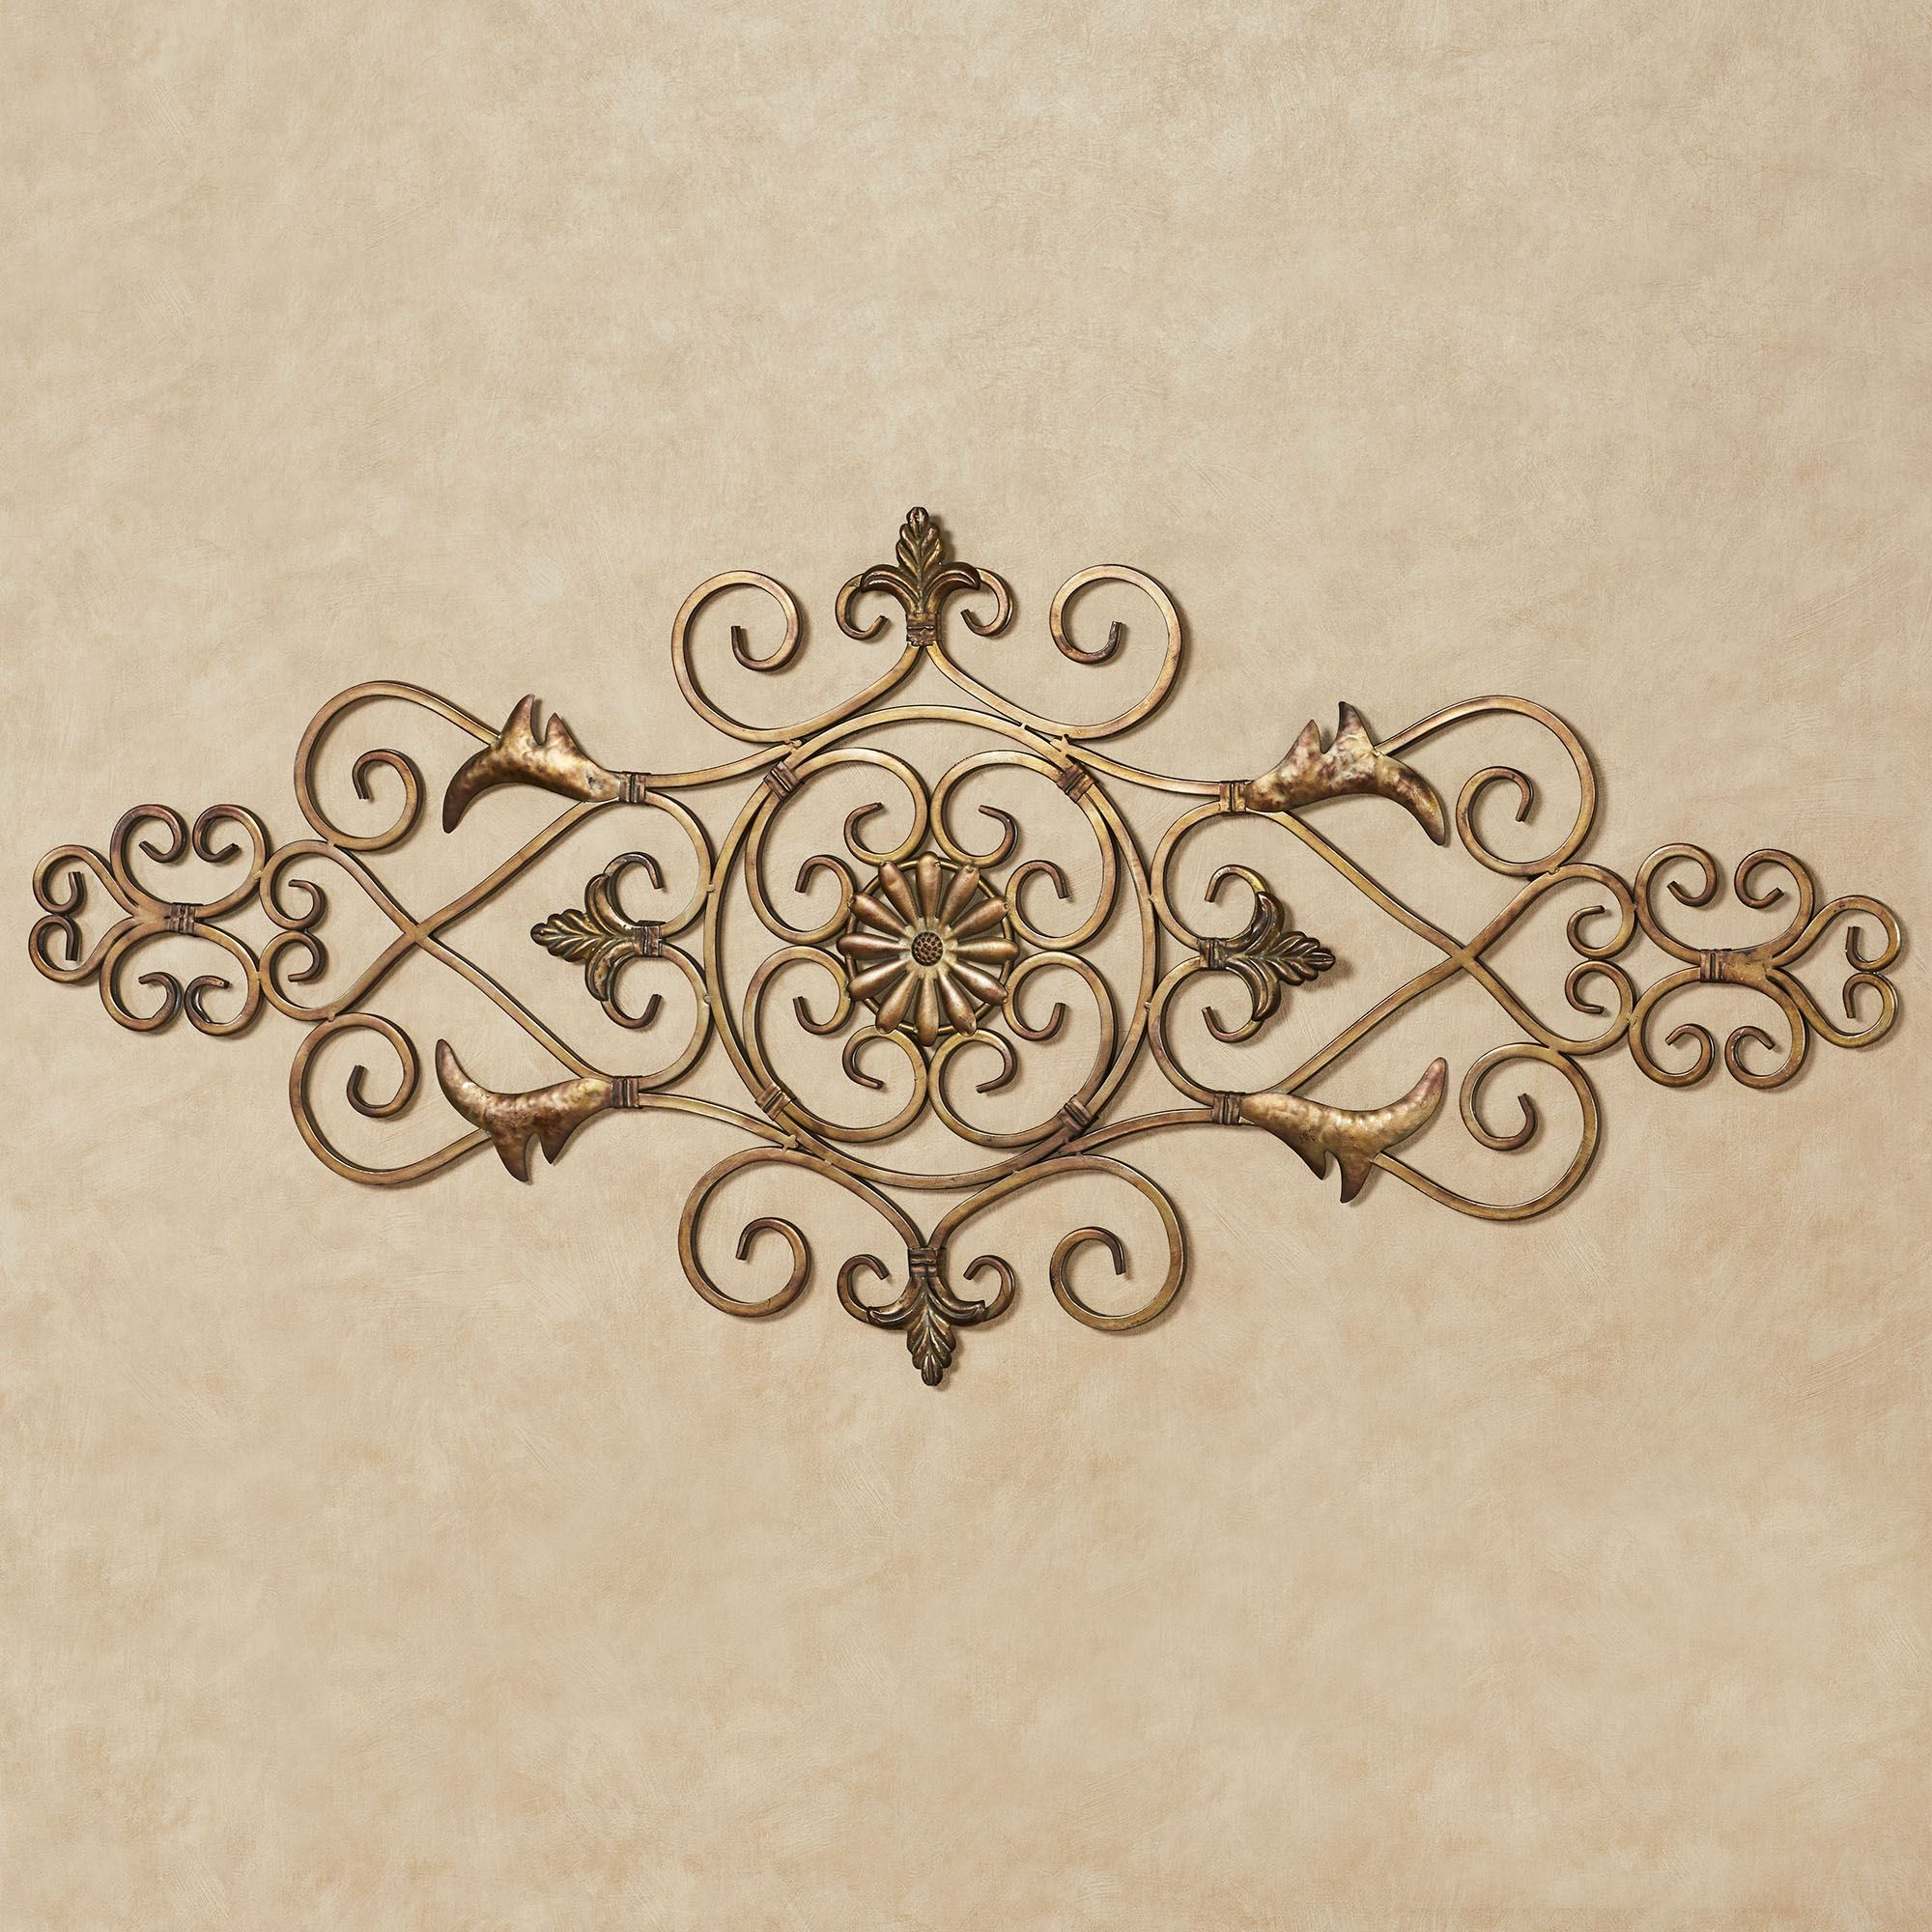 Metal Wall Medallion Amusing Wall Grilles  Touch Of Class Design Decoration